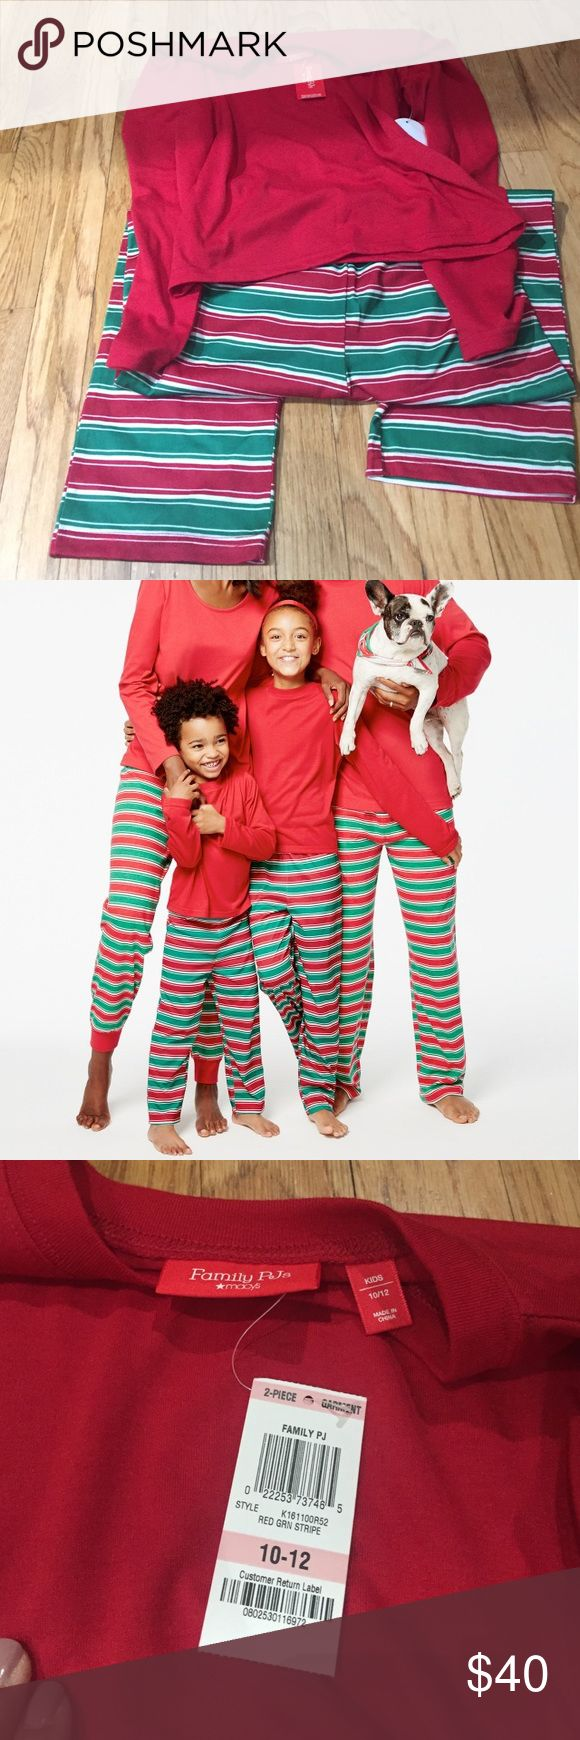 Kids red Family Pjs size 10-12 Kids red Family Pjs size 10-12. This is brand new, no damage. Cotton/ polyester, machine washable, top features a crew neckband long sleeve, full length pants feature a striped design. Macy's Pajamas Pajama Sets